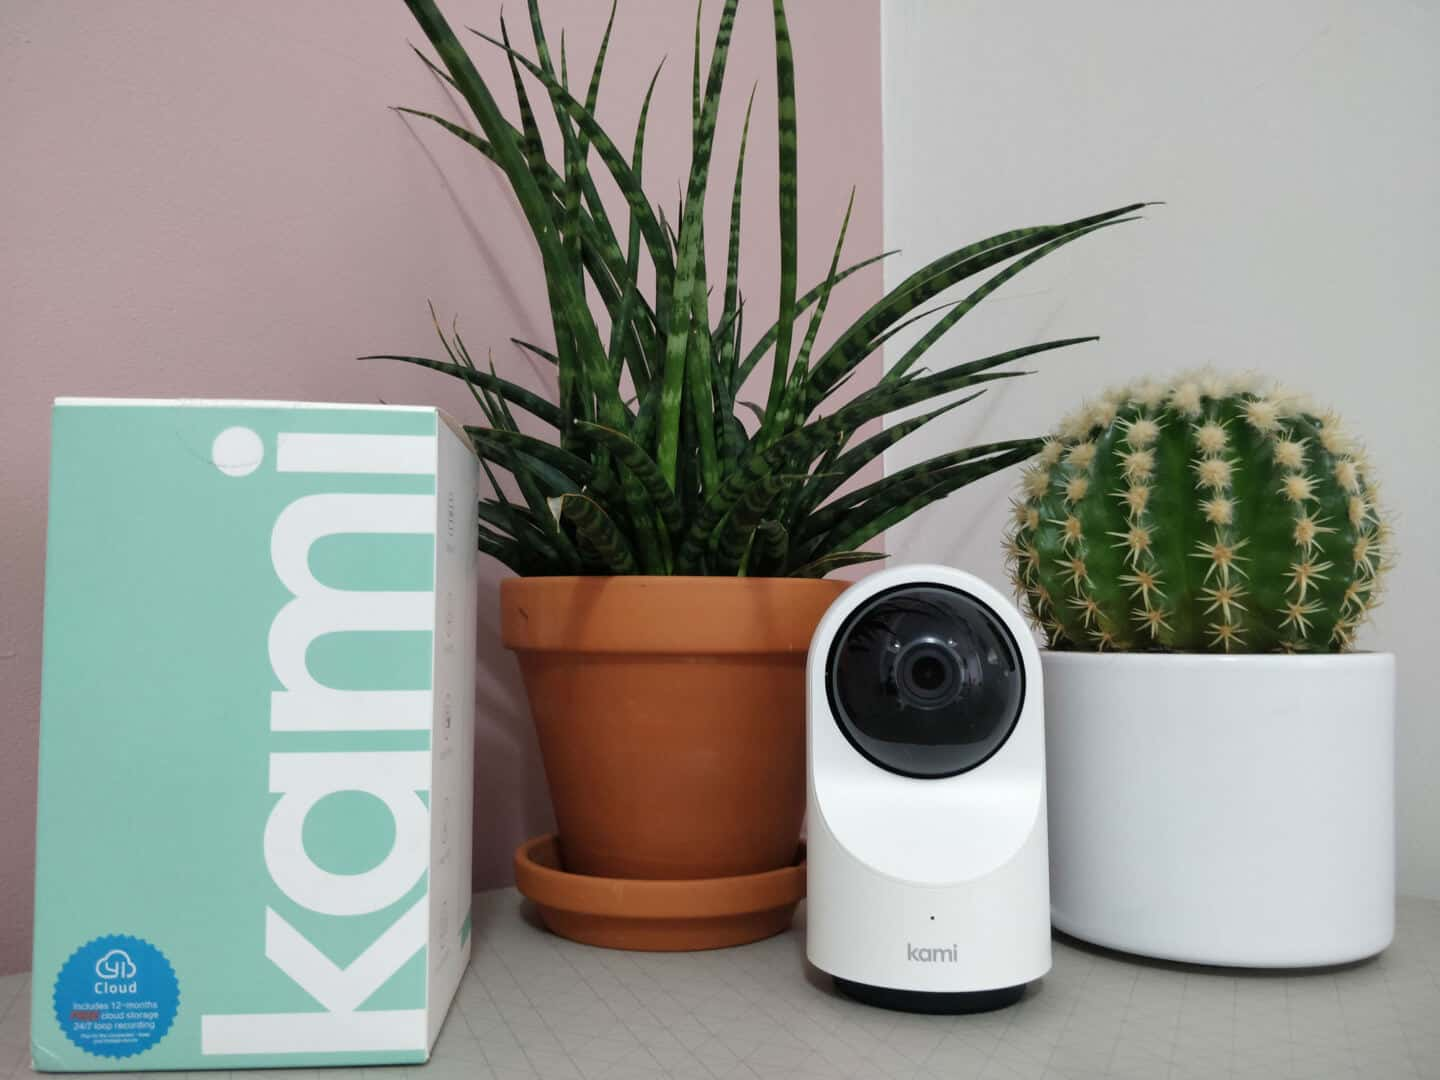 Kami indoor home security camera on a table between two plants with the empty box.